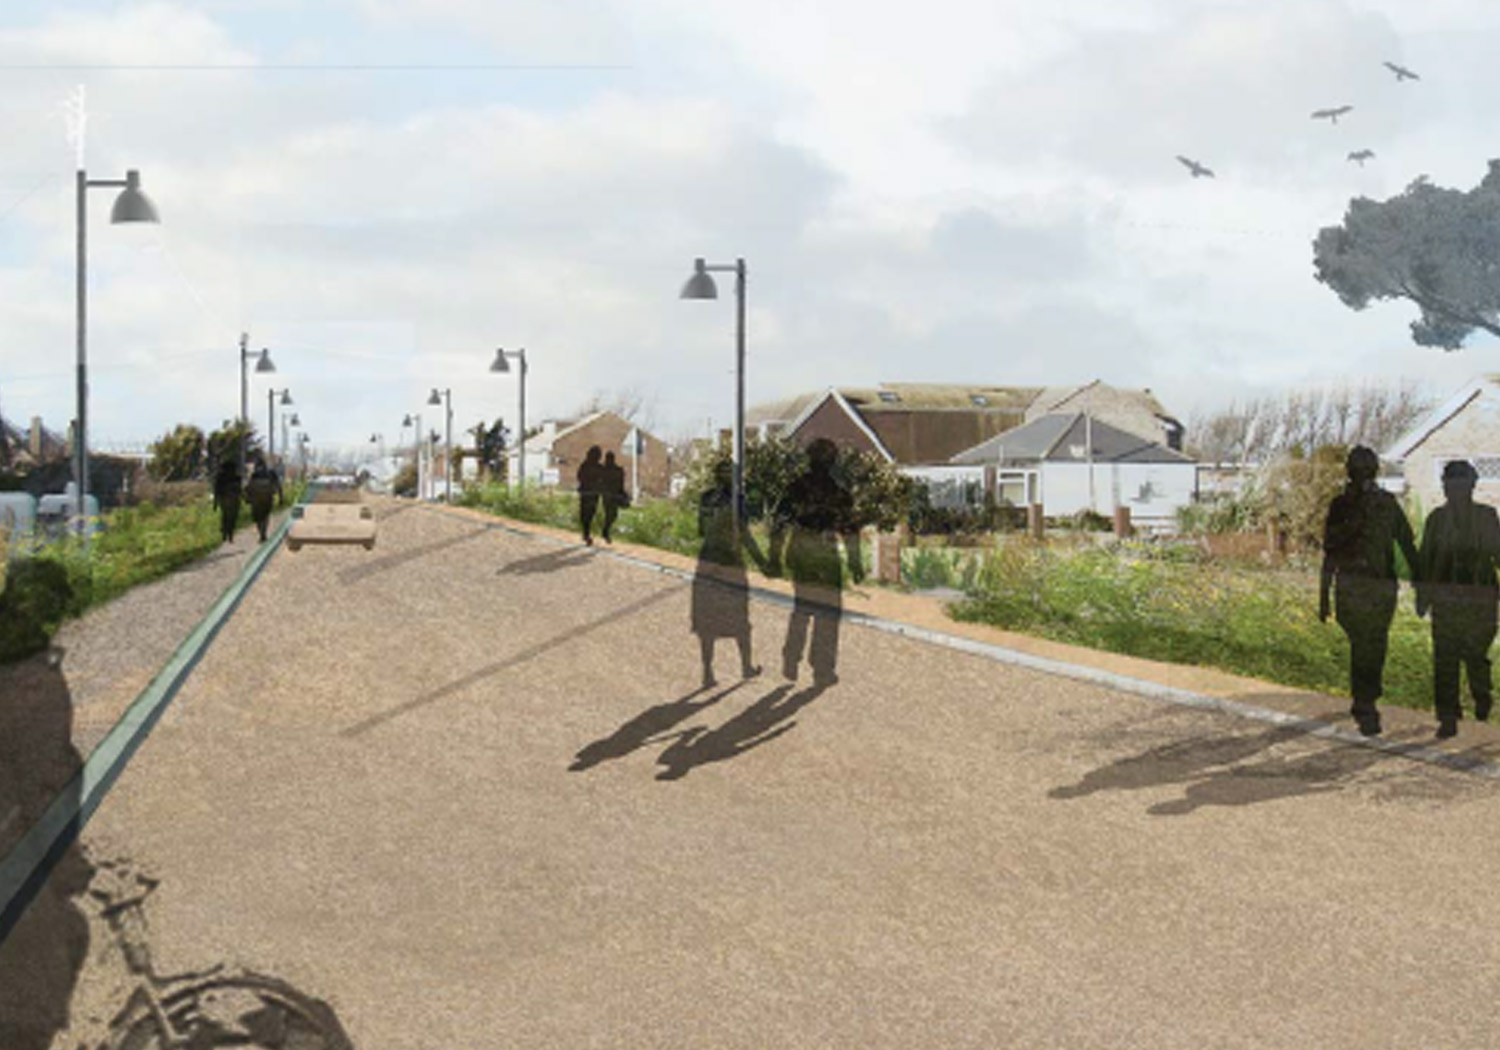 Projects-RecreationTourism-CamberSands_Visual1-1500x1050